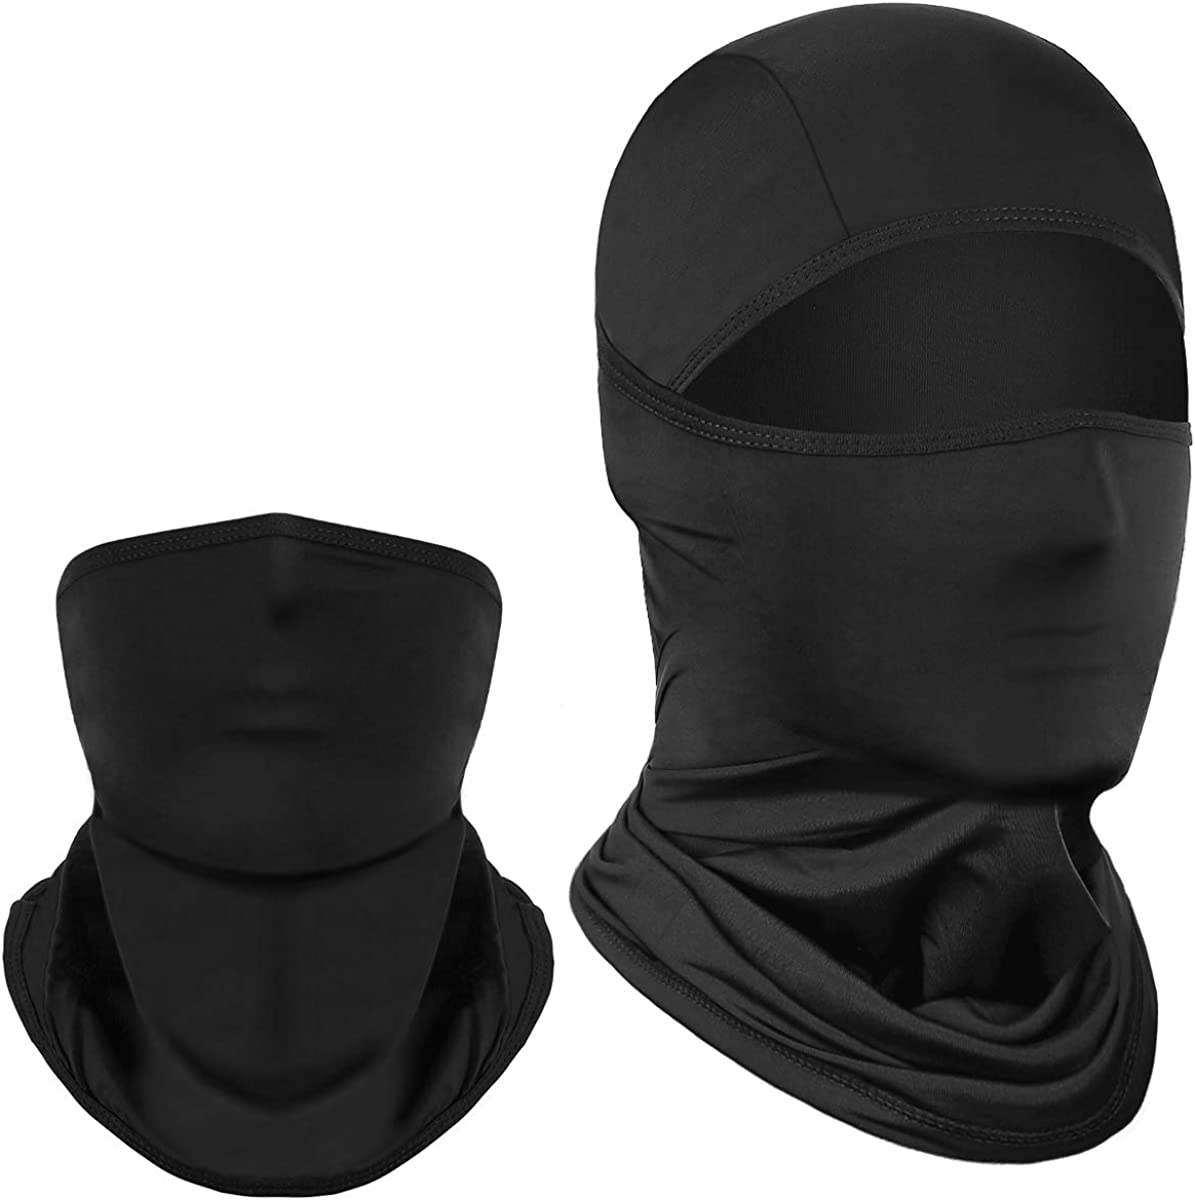 Achiou Summer Balaclava Face Mask UV Protection Cooling of Thin Ice Silk for Men Women Sun Hood Cycling, Climing, Running